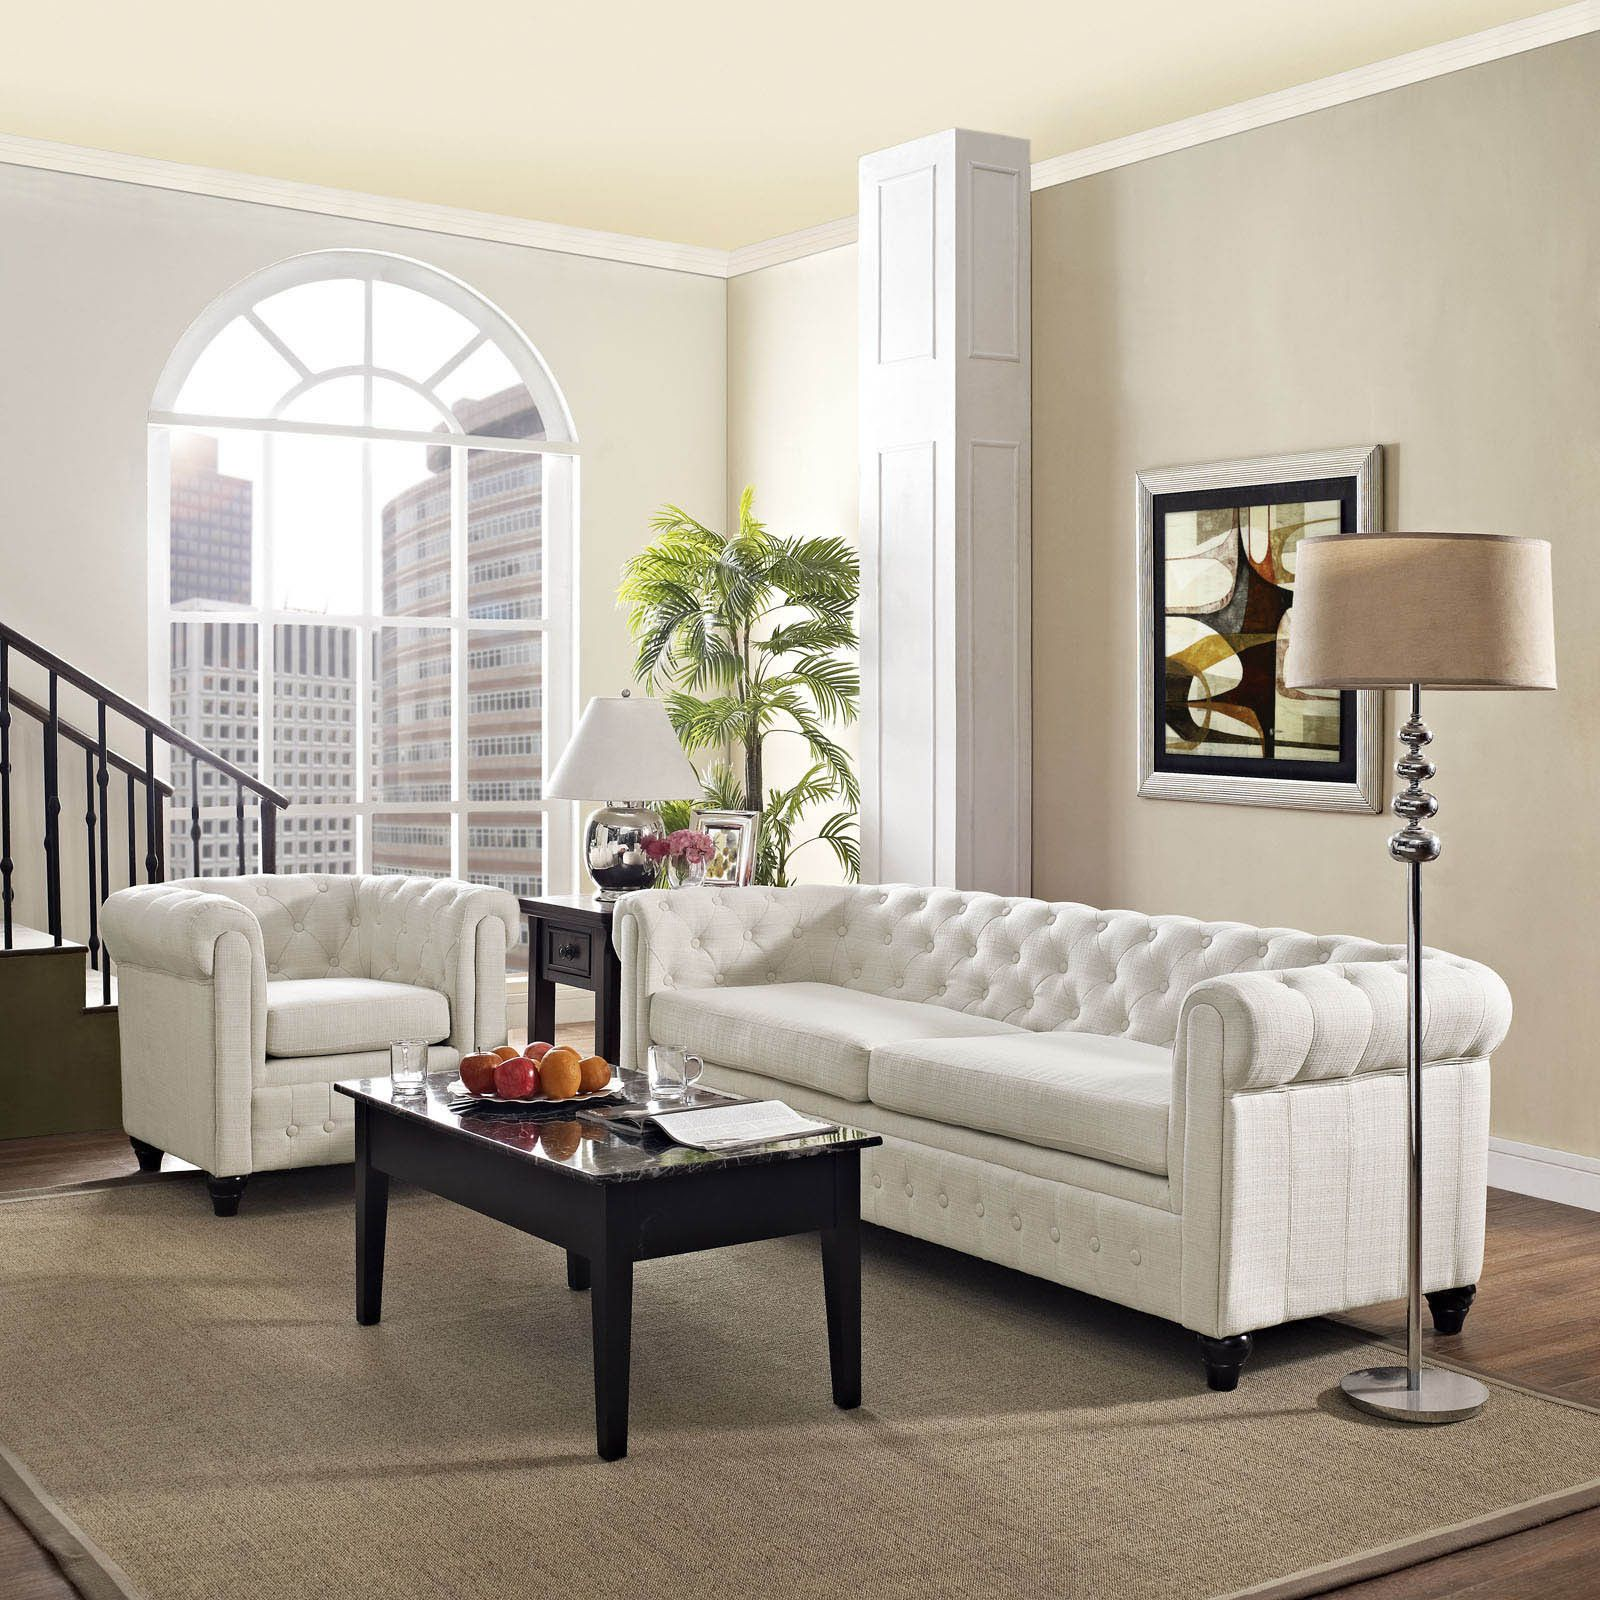 Buy white living room set from Overstock.com for everyday discount ...